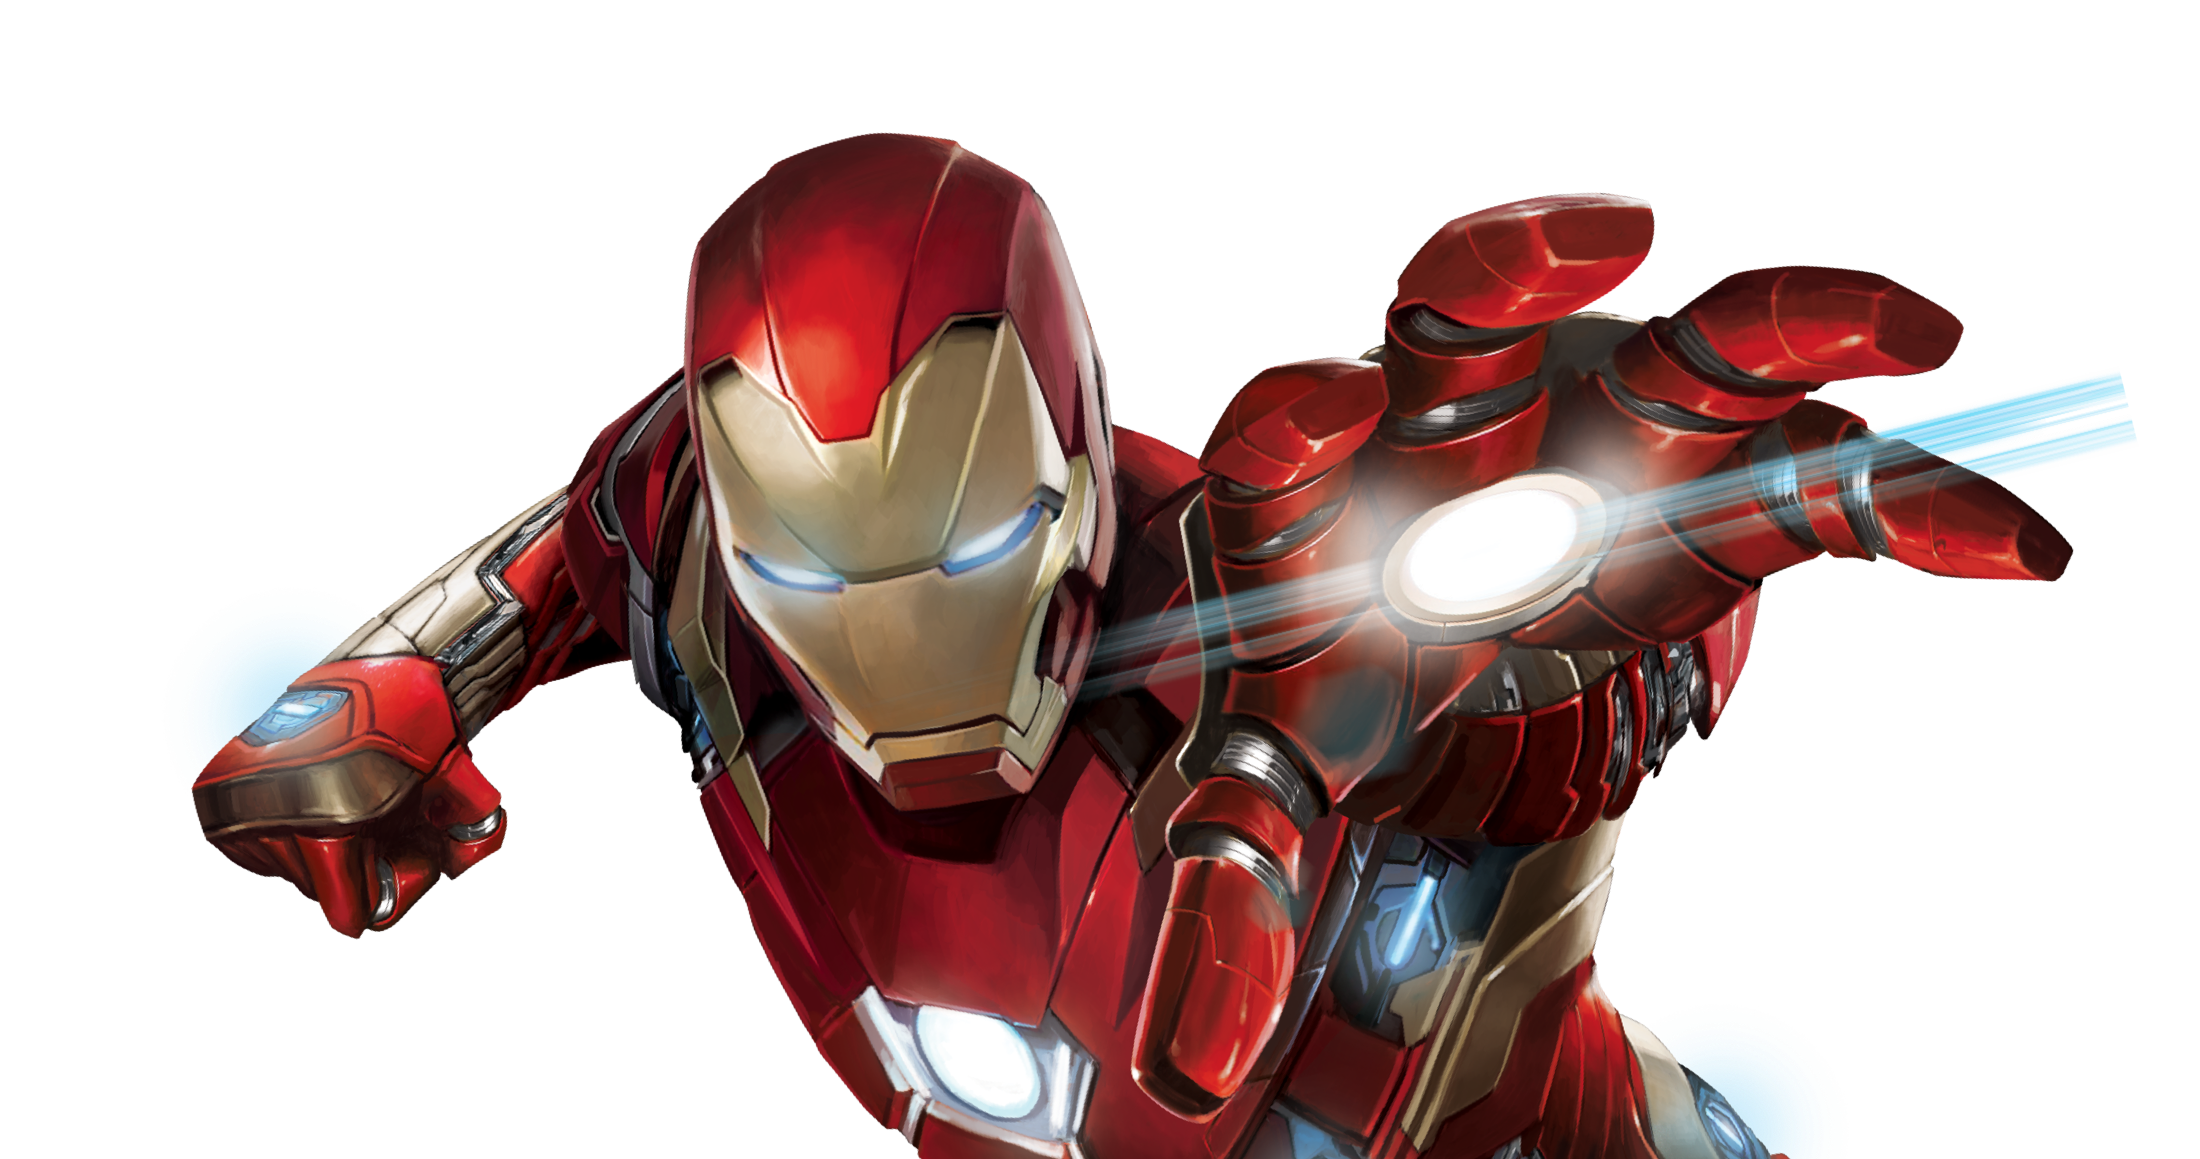 Iron Man Flying PNG Transparent Image - Iron Man PNG